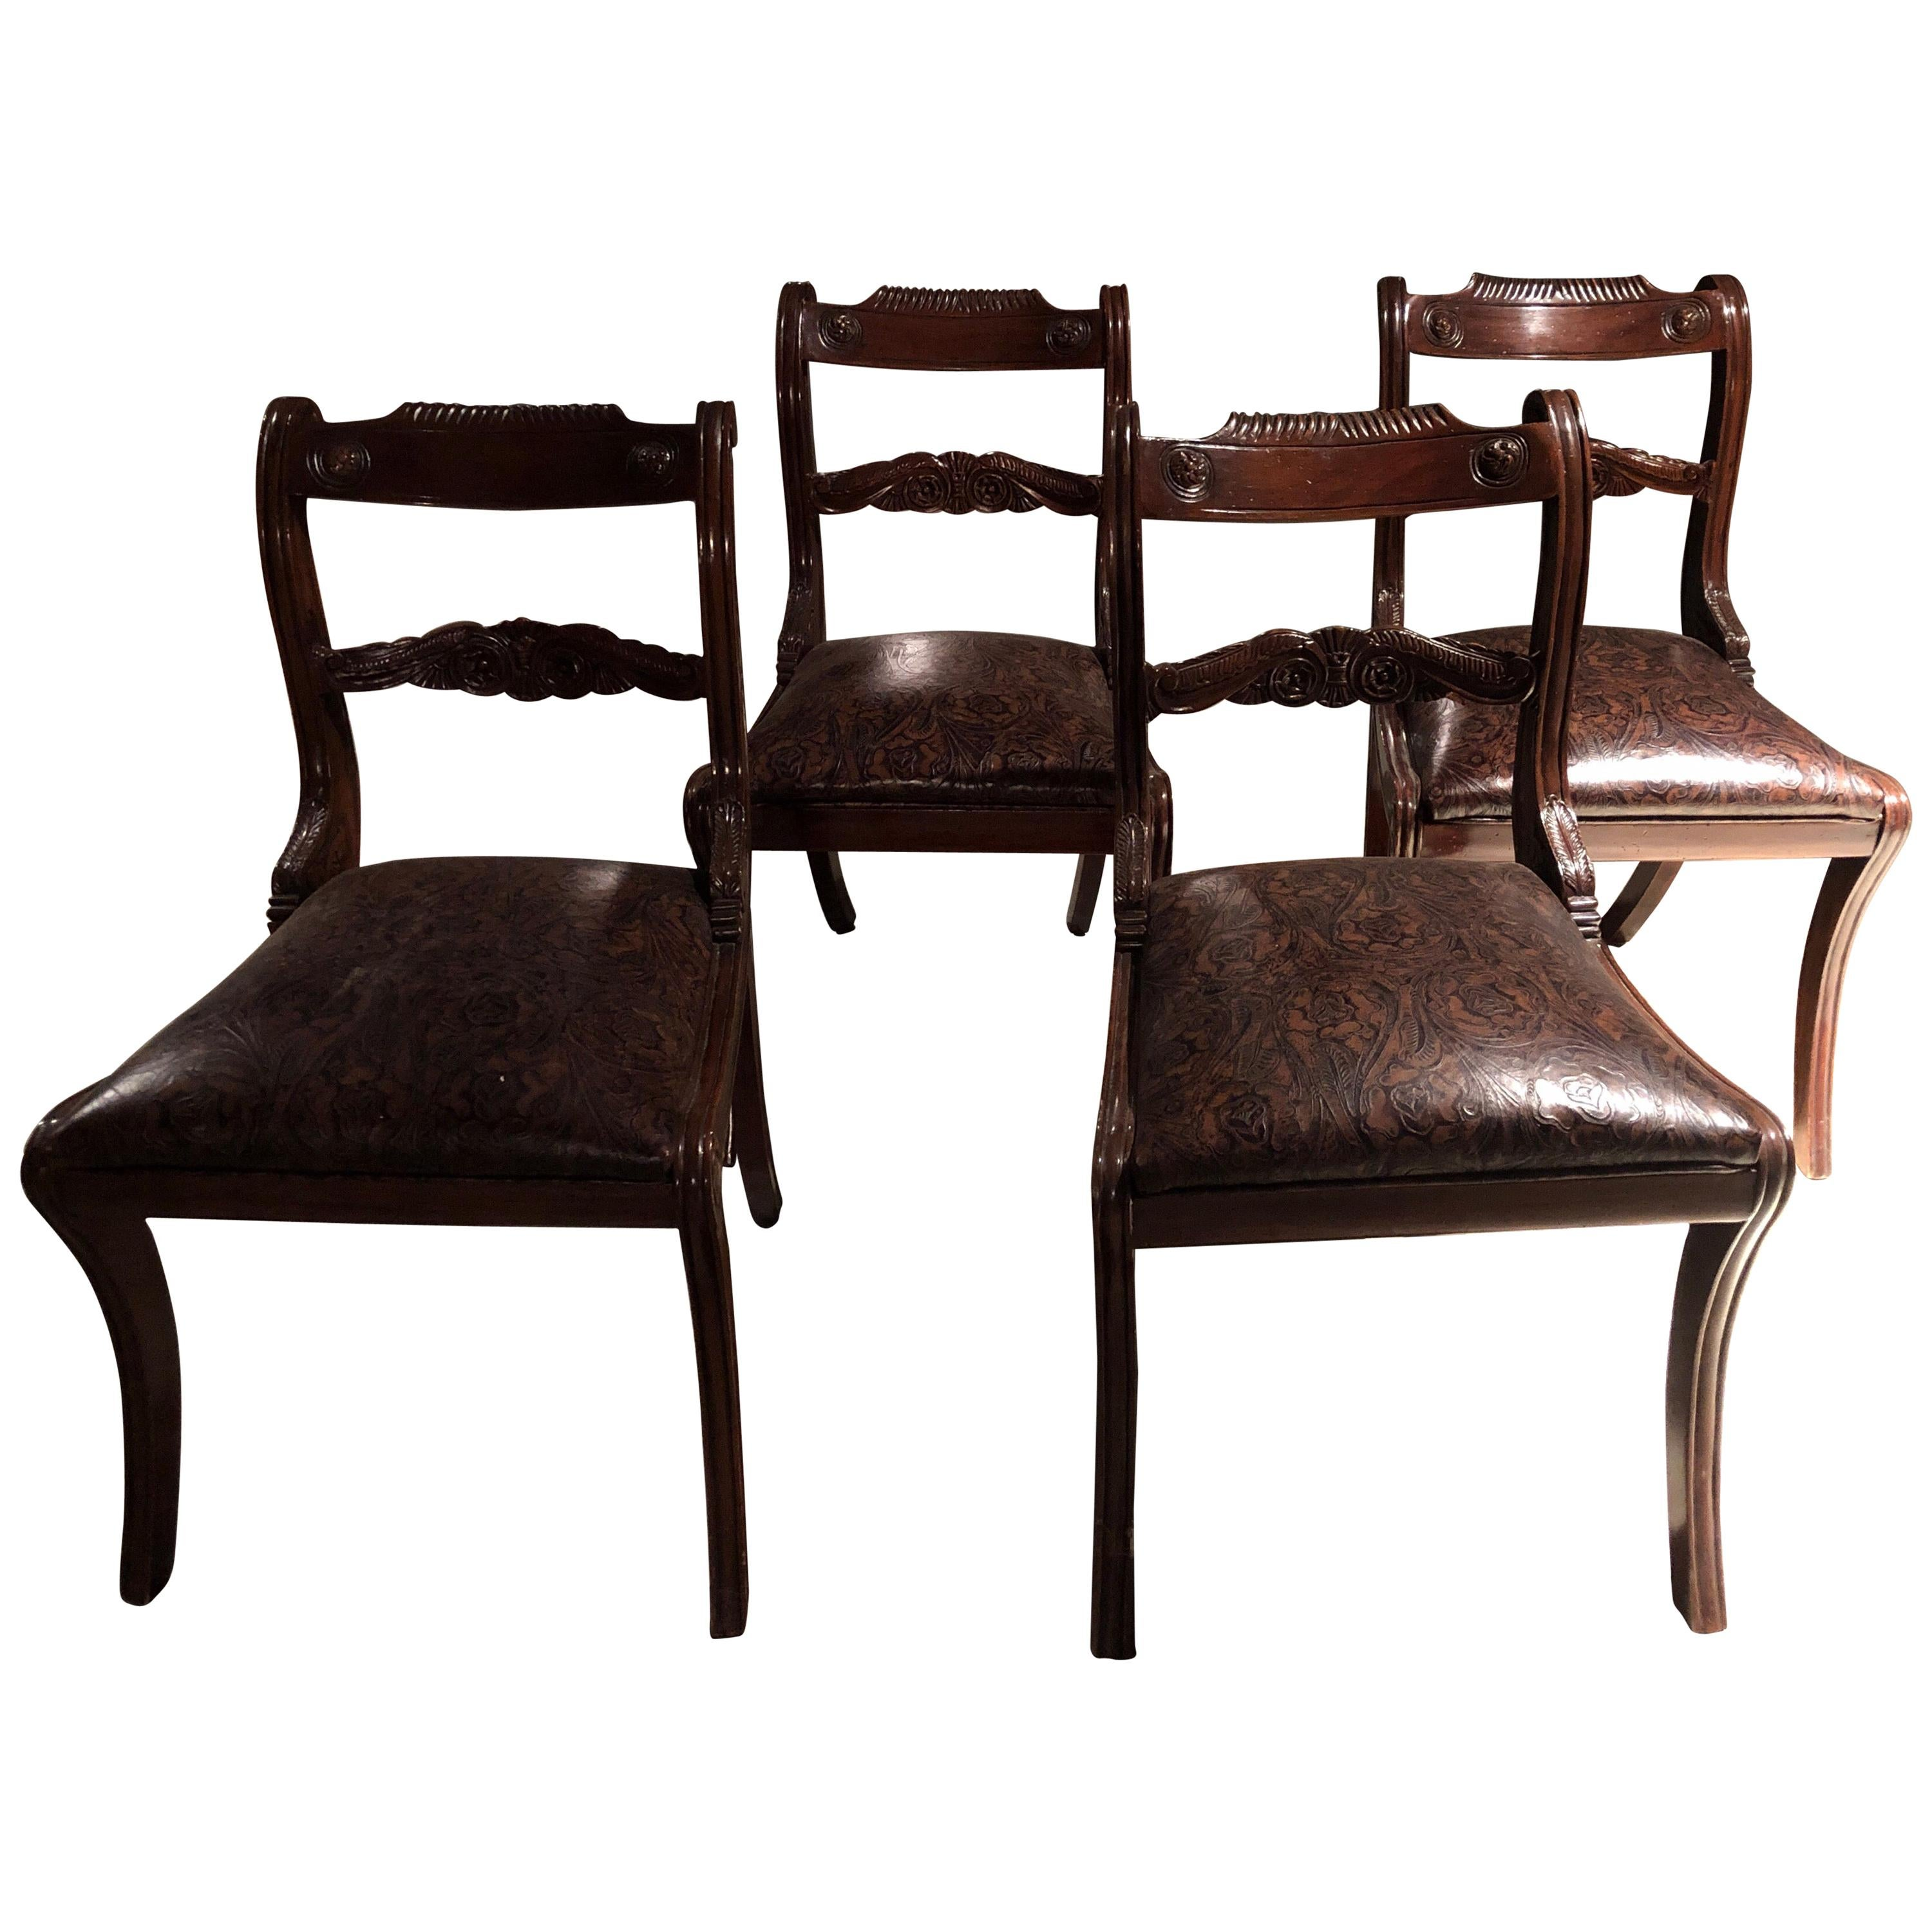 Set of Four 19th Century Victorian Mahogany Dining Chairs